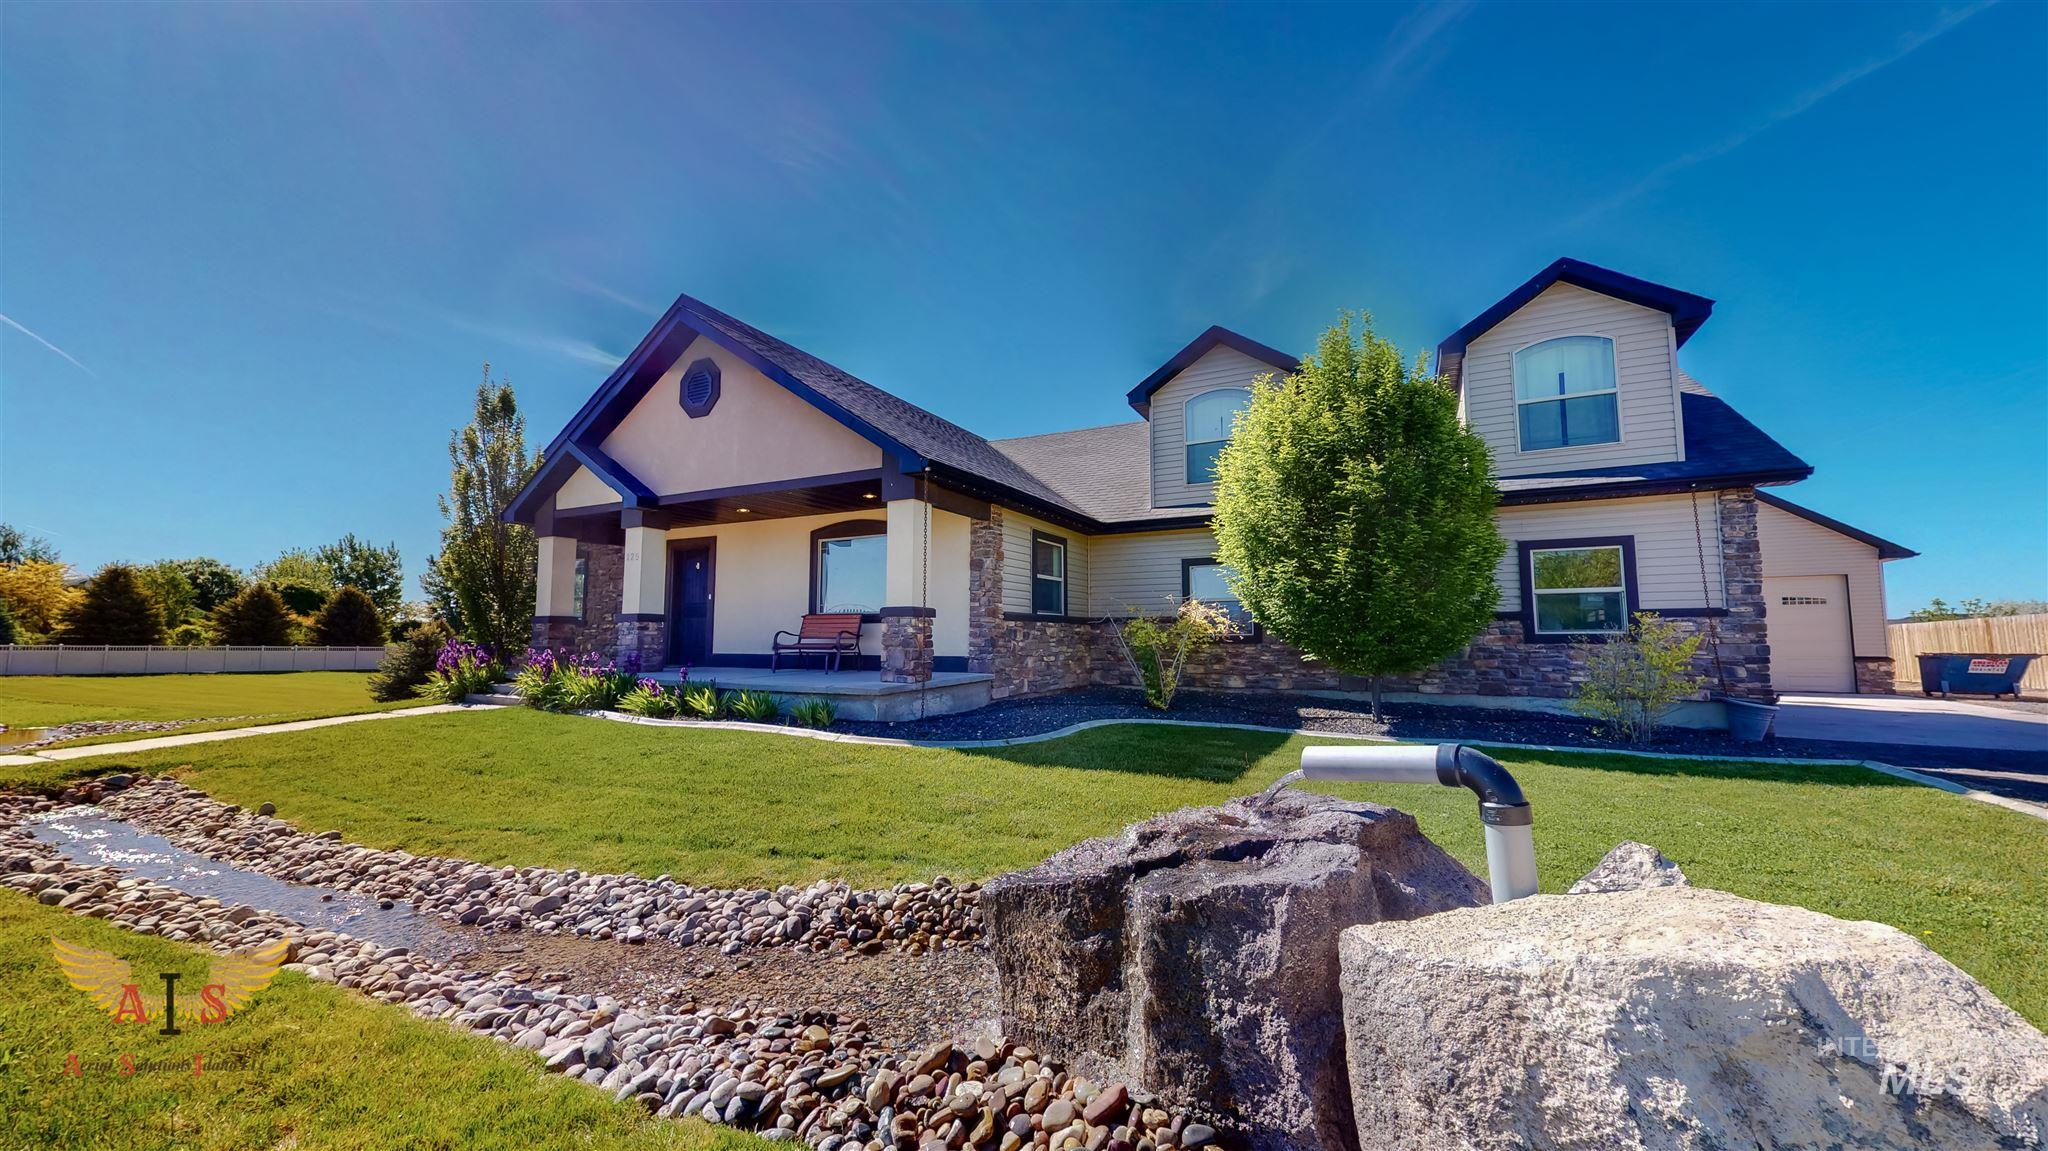 125 E 50 N, Jerome, Idaho 83338, 6 Bedrooms, 5 Bathrooms, Residential For Sale, Price $580,000, 98768641